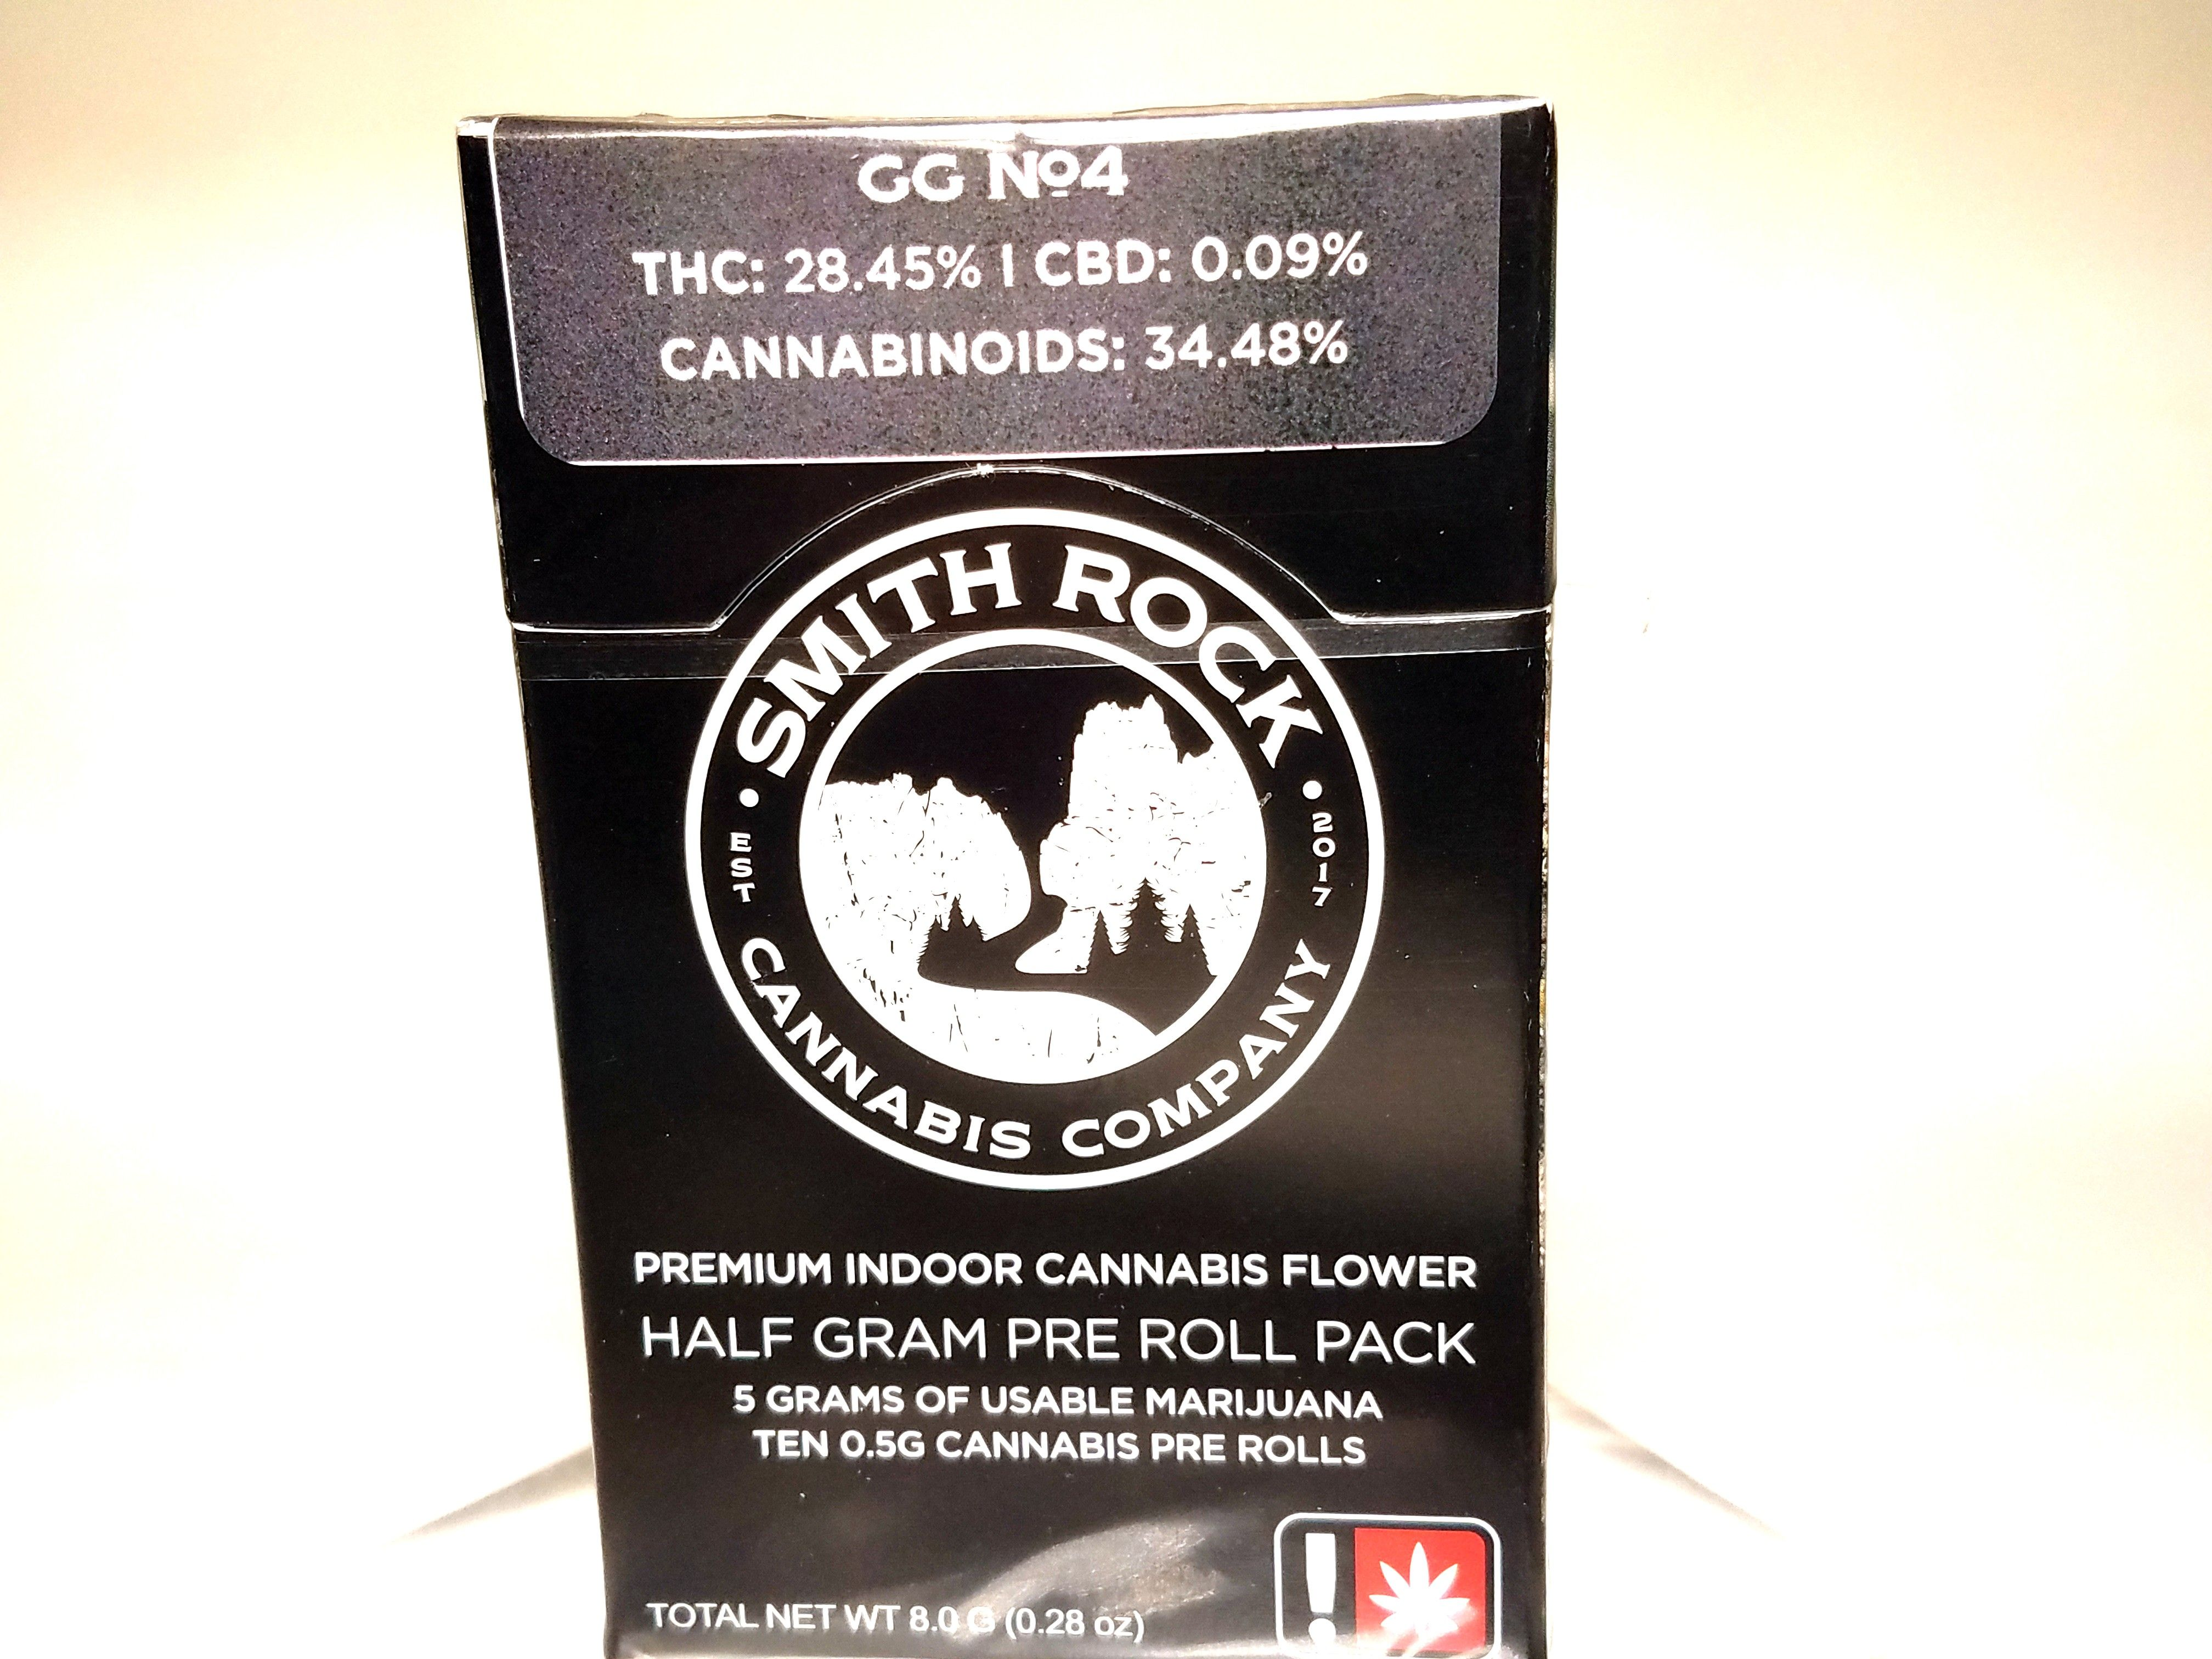 Smith Rock Cannabis Company - GG #4, Hybrid, 10 pack